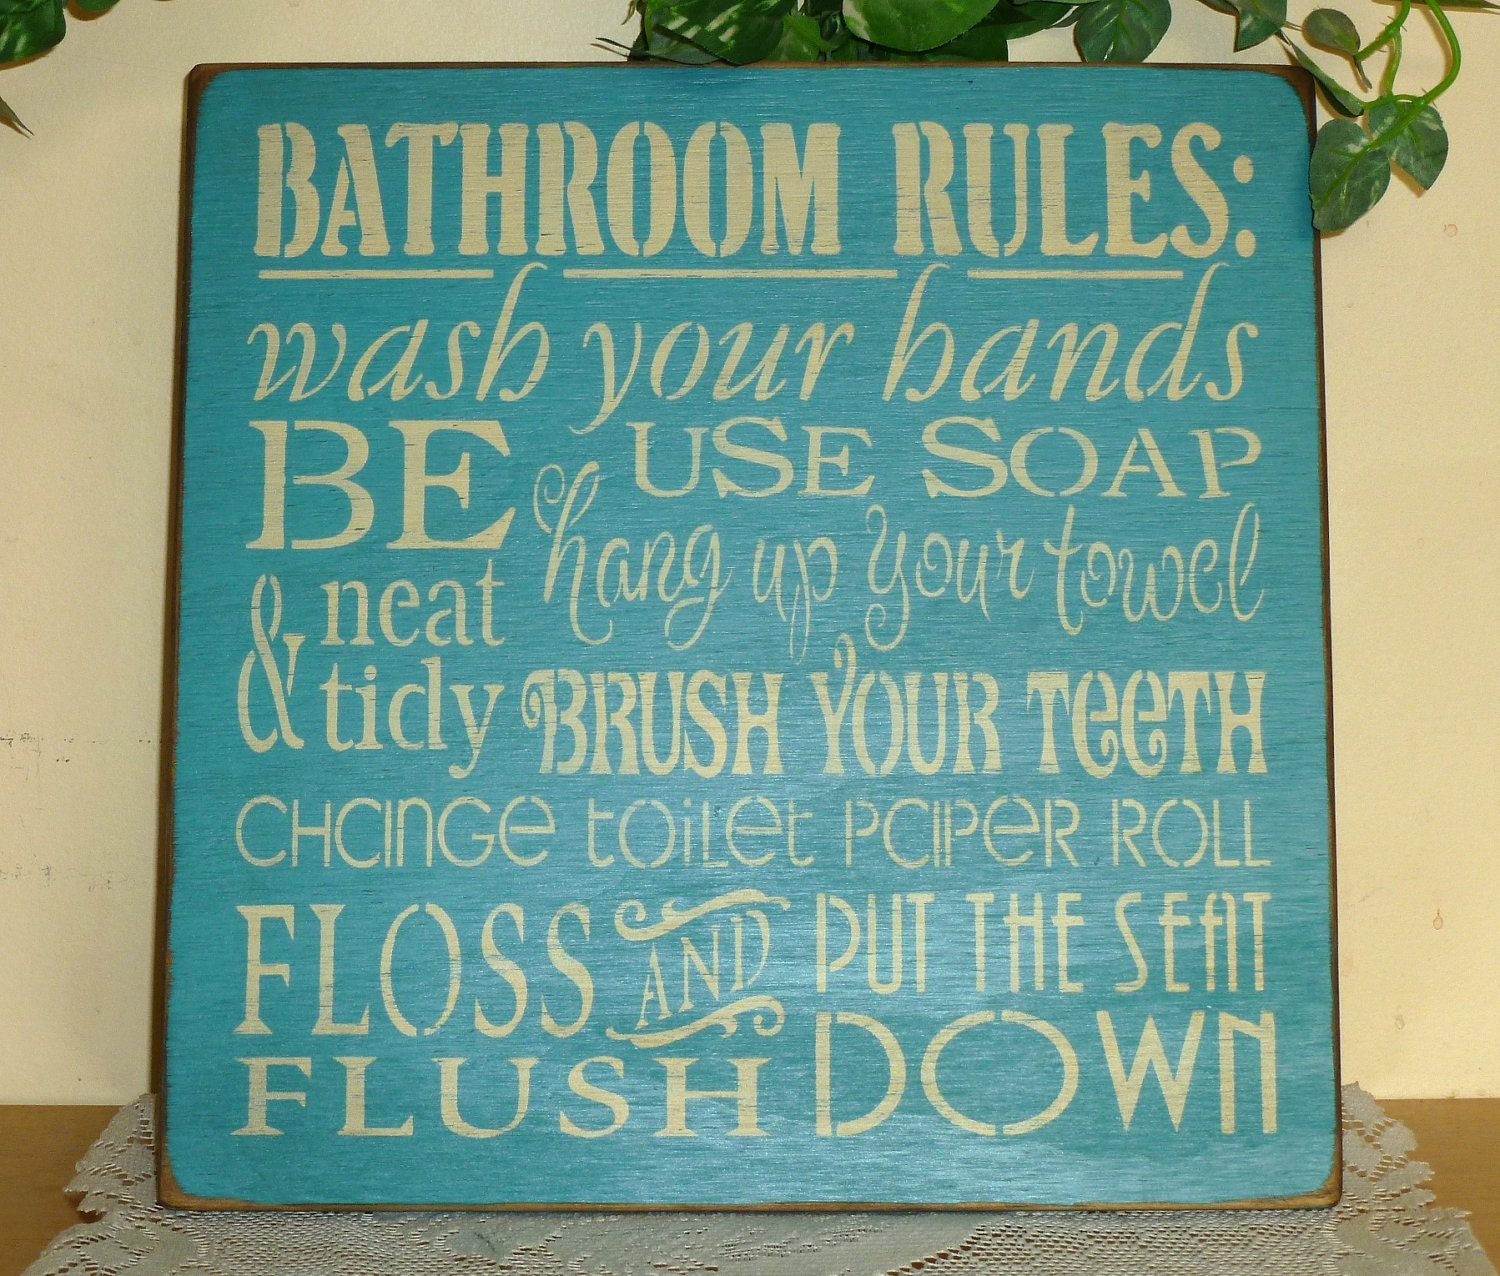 bathroom rules sign. bathroom rules sign nhe 15938 restroom